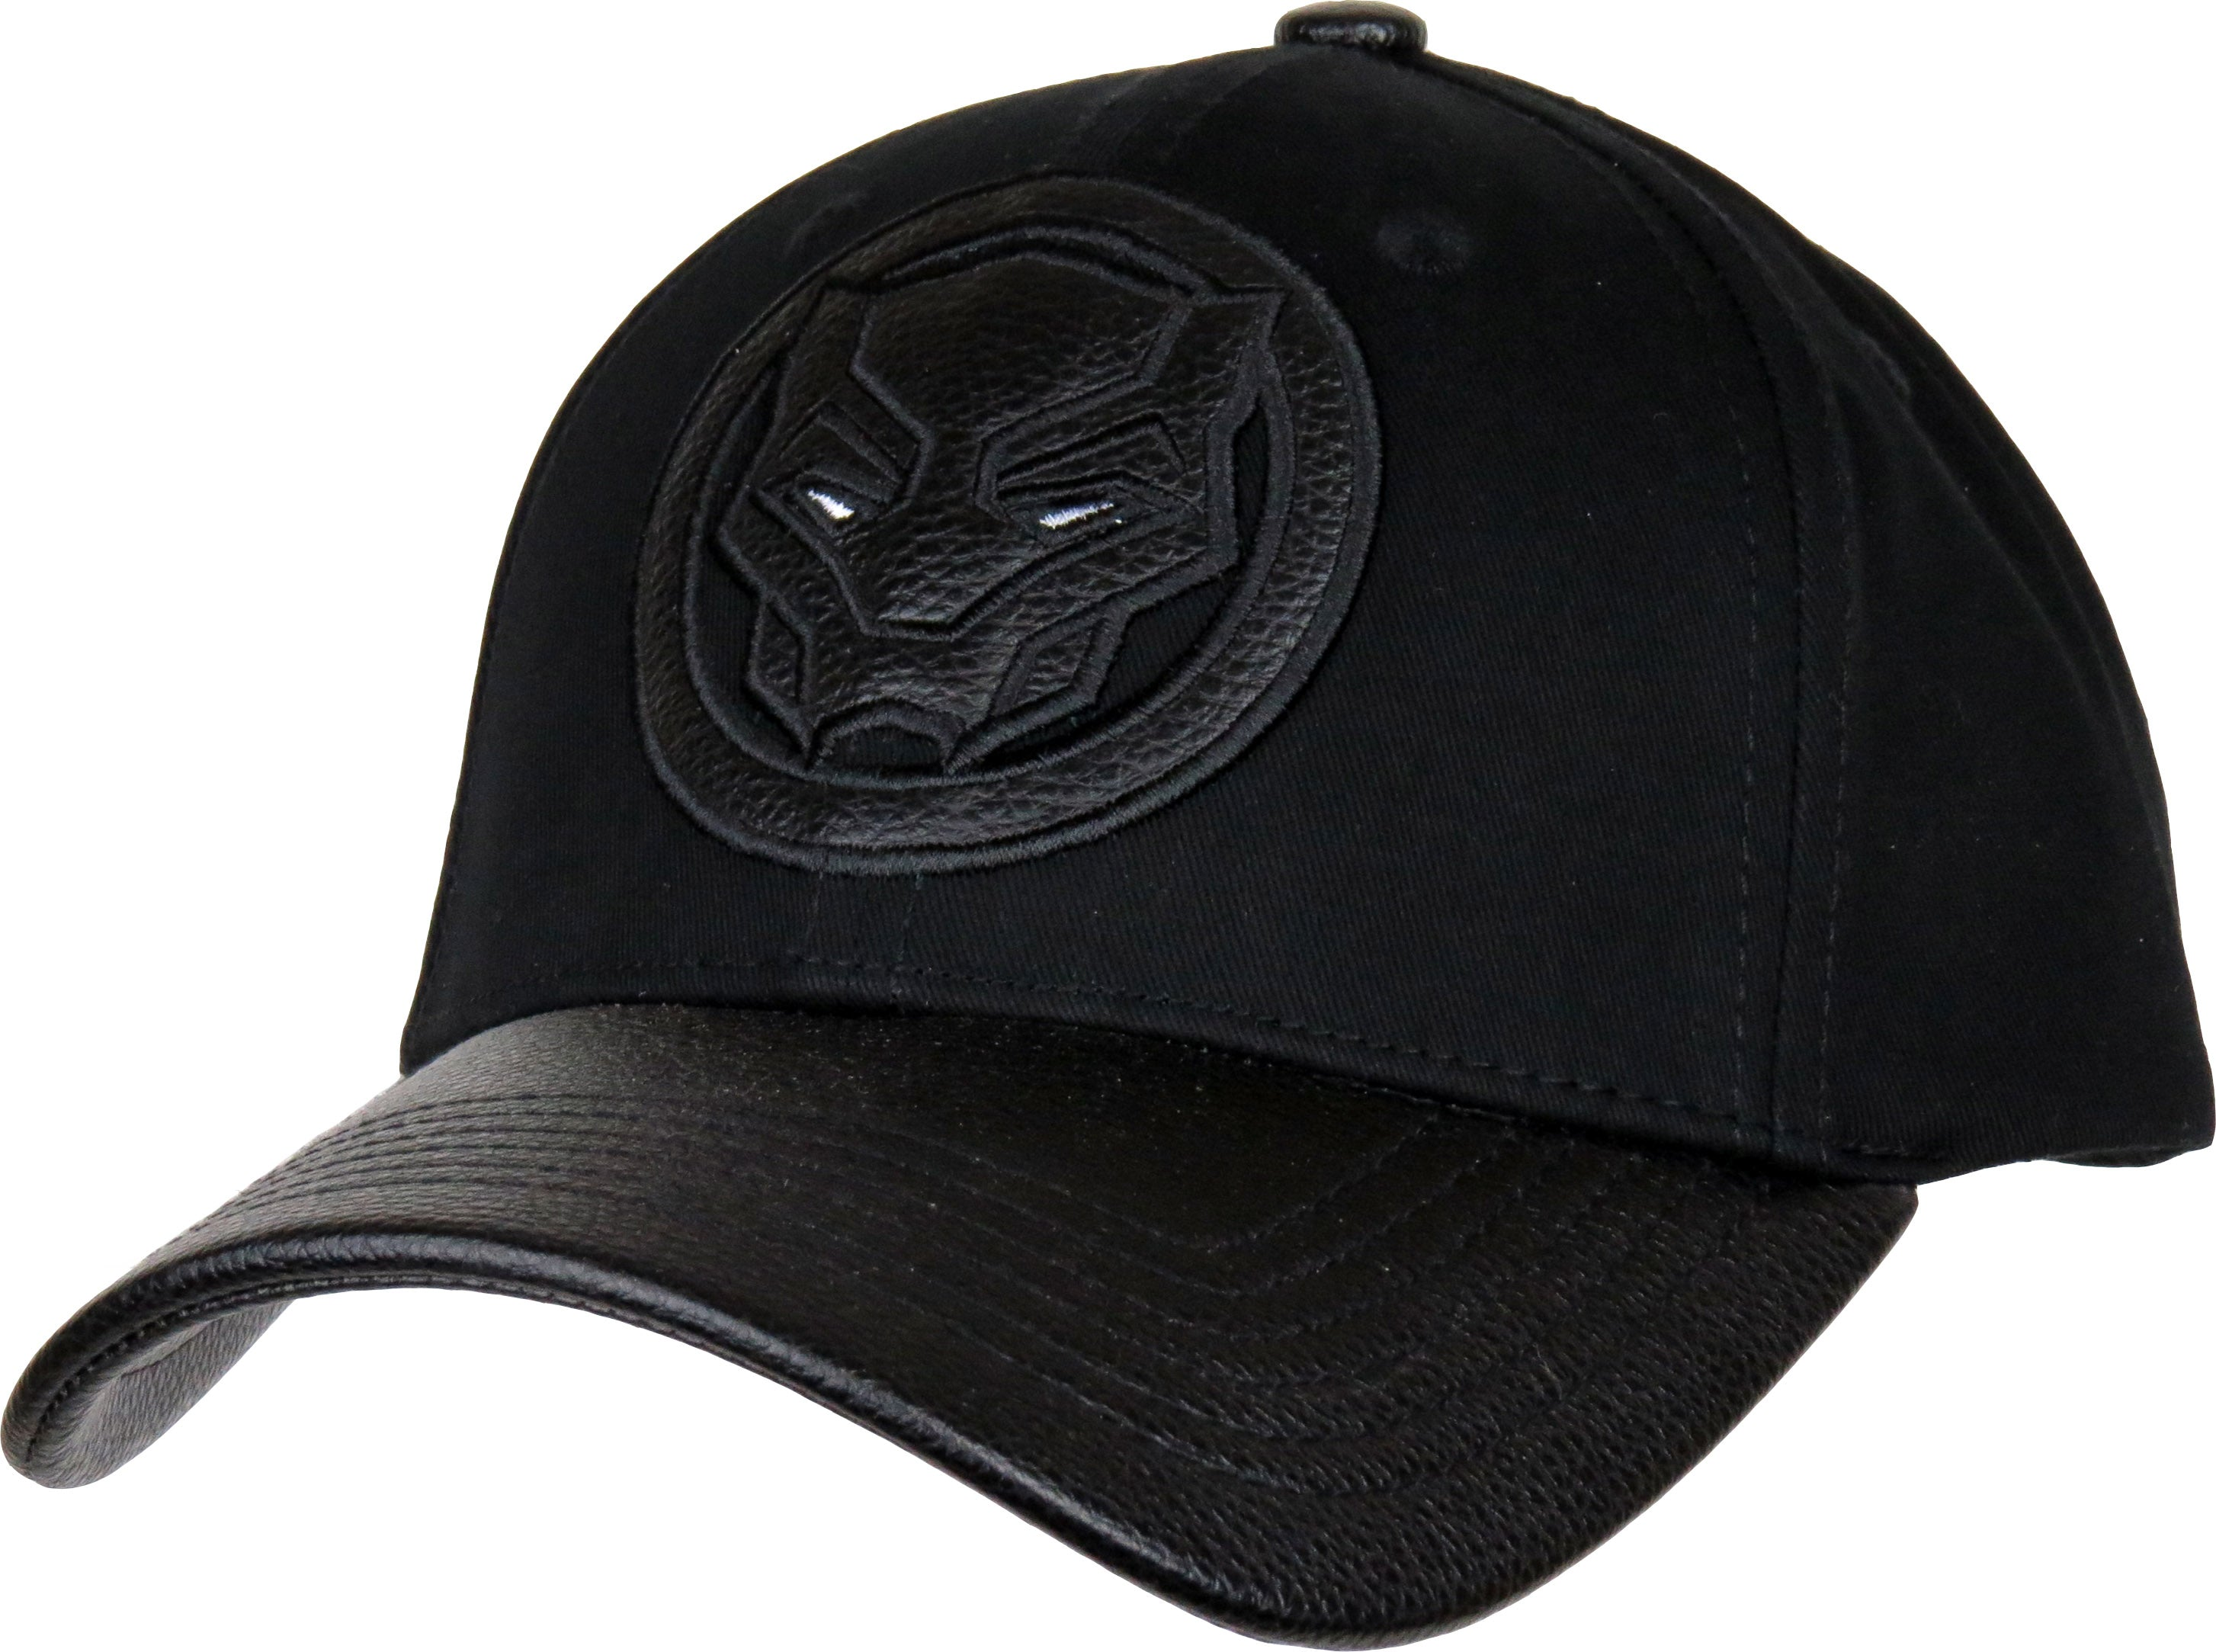 the latest 1df0a 175d7 Marvel Comics Black Panther Adjustable Black Cap - pumpheadgear, baseball  caps ...